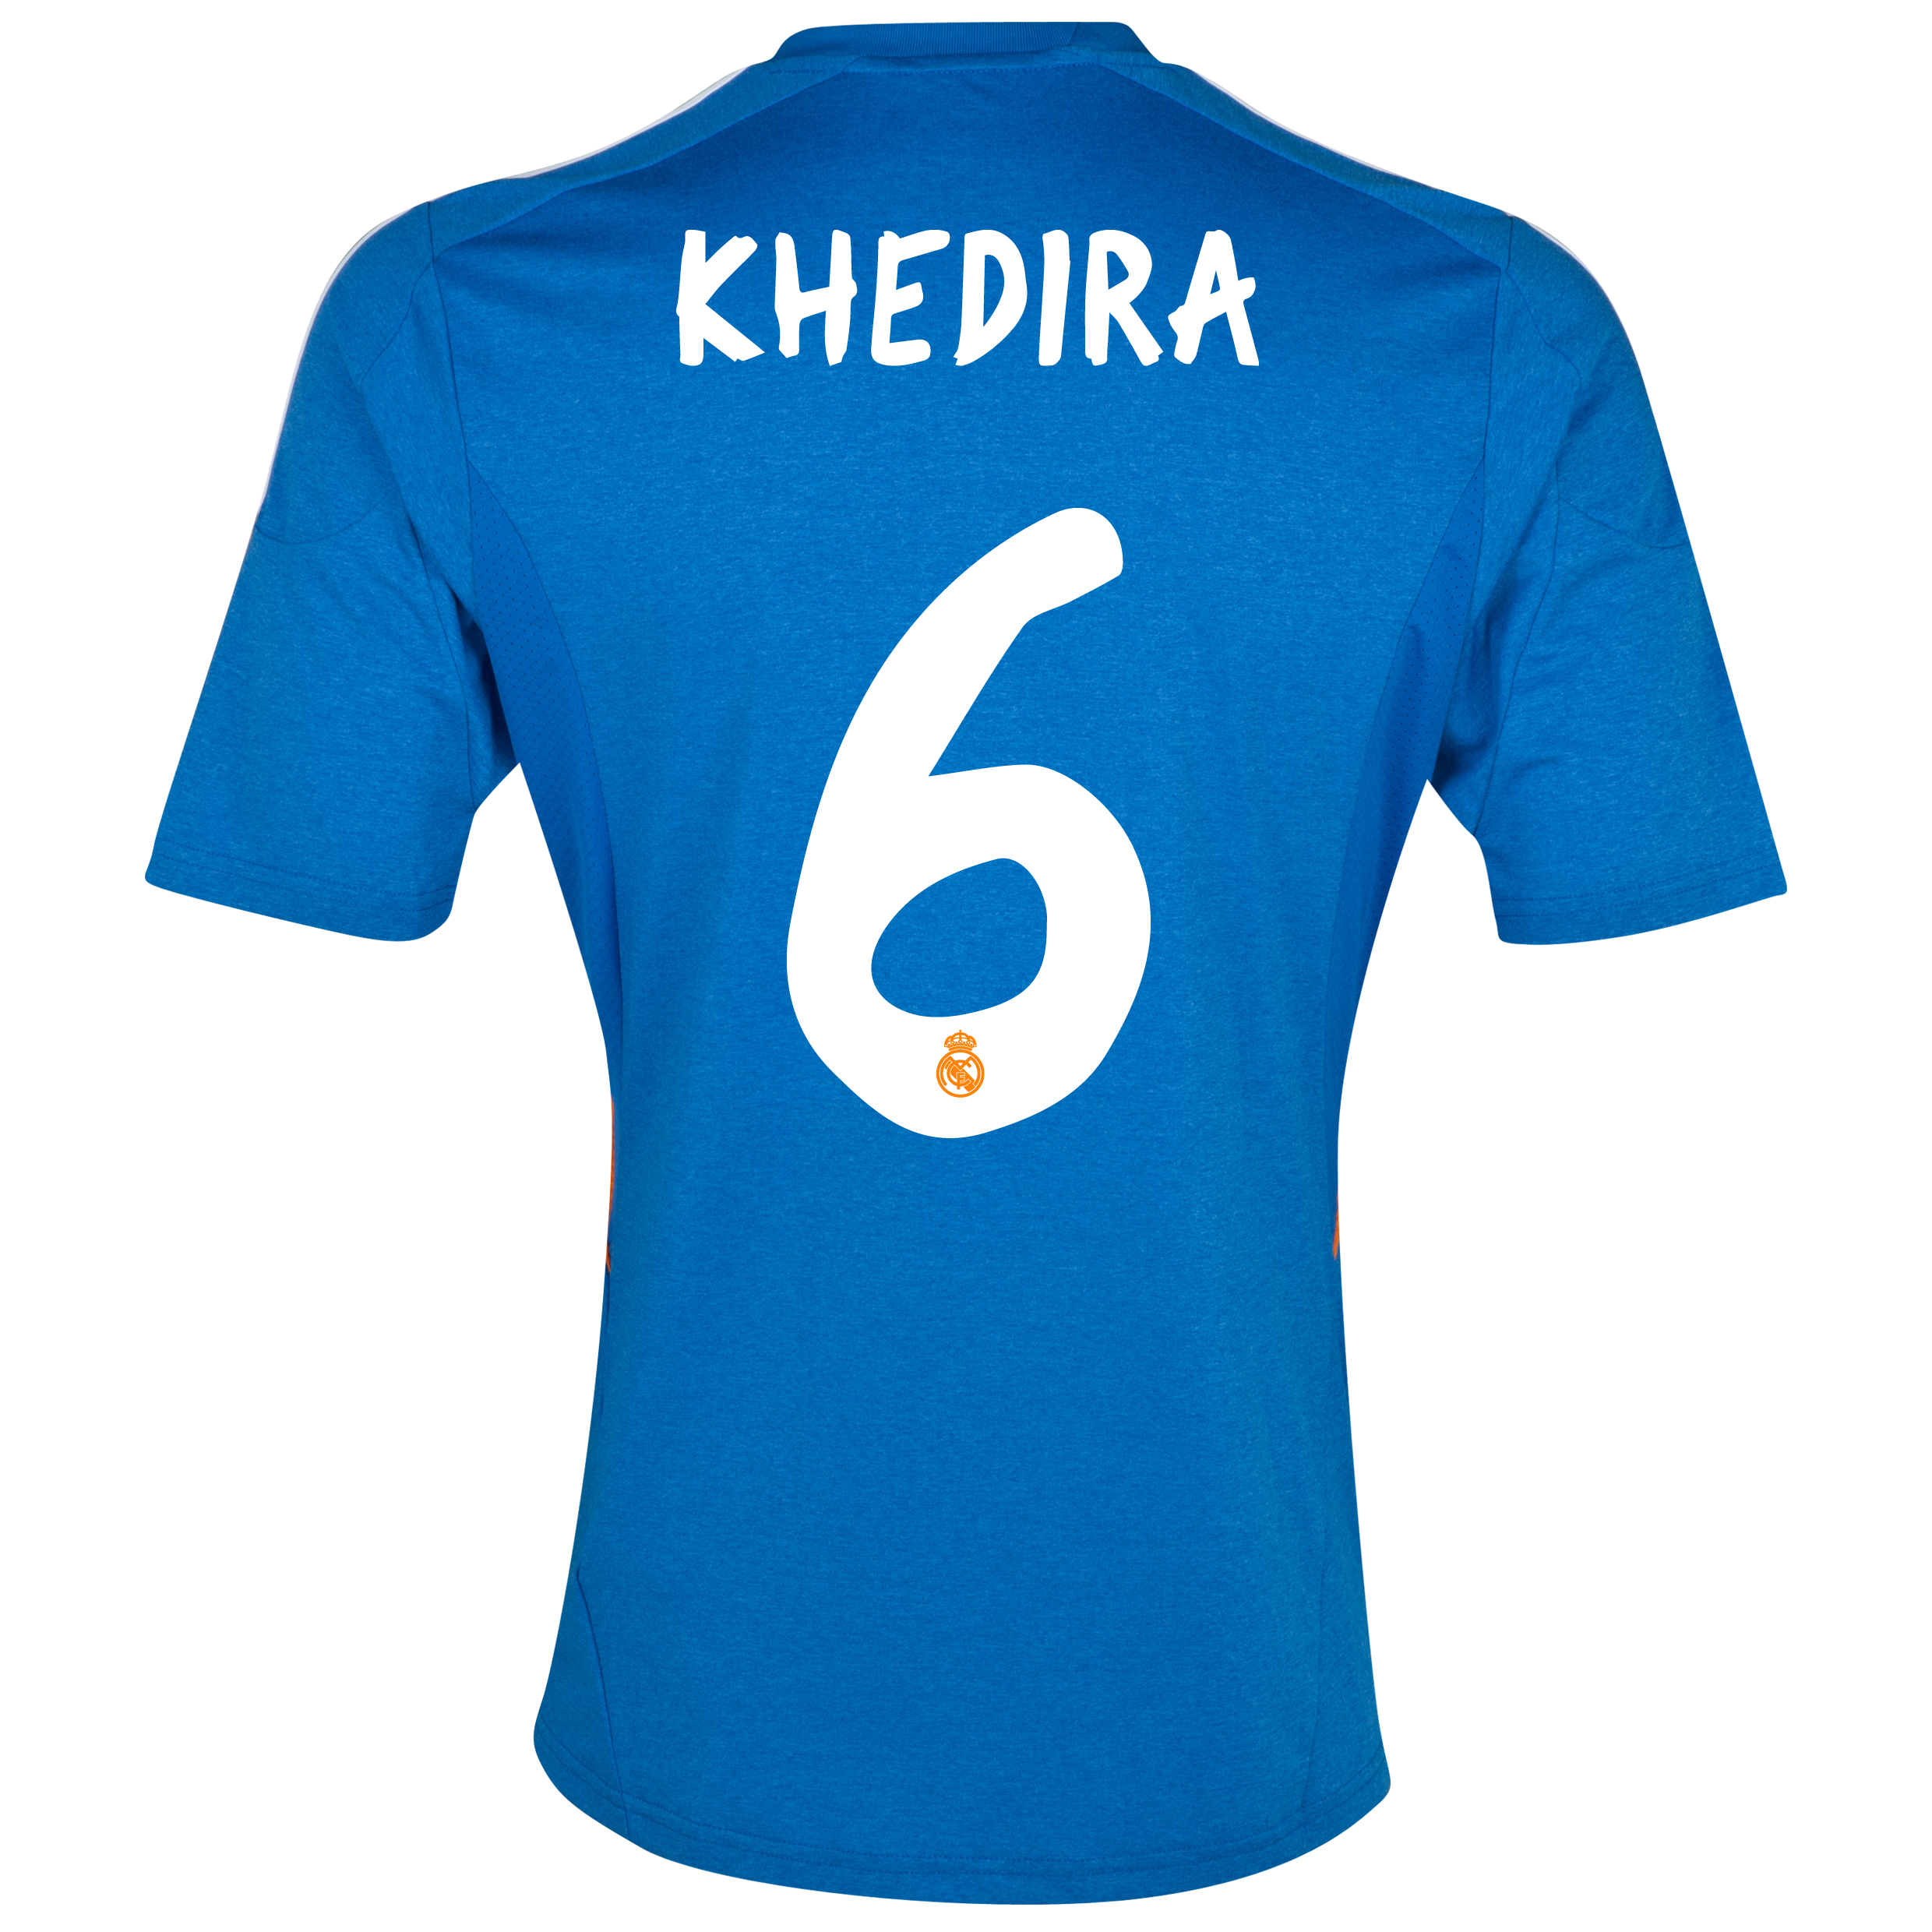 Real Madrid Away Shirt 2013/14 with Khedira 6 printing